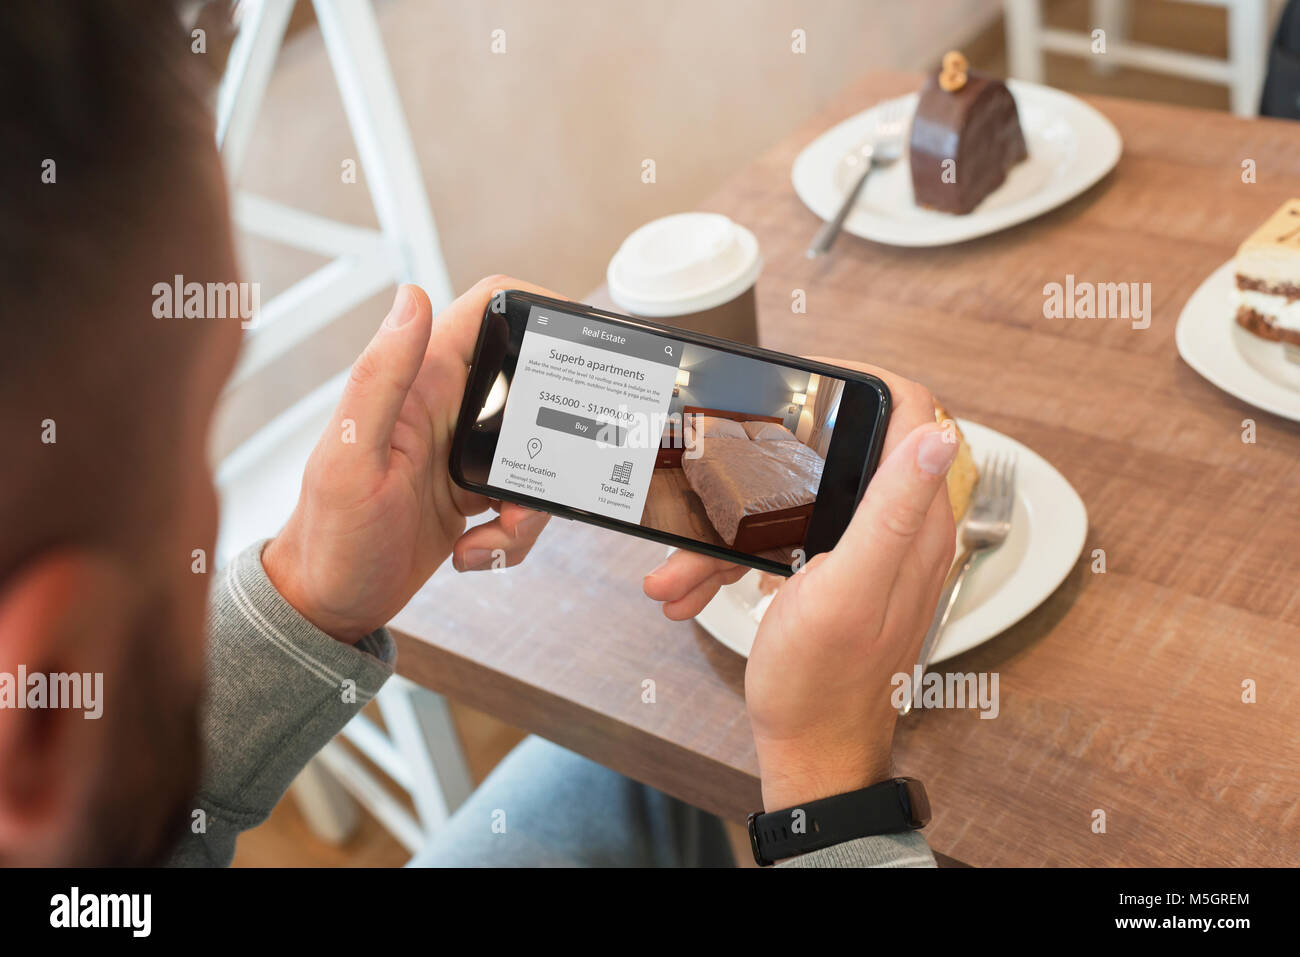 Property Agent Use Agency Web Site With Mobile Phone To Find Apartment.  Coffee Shop In Background.